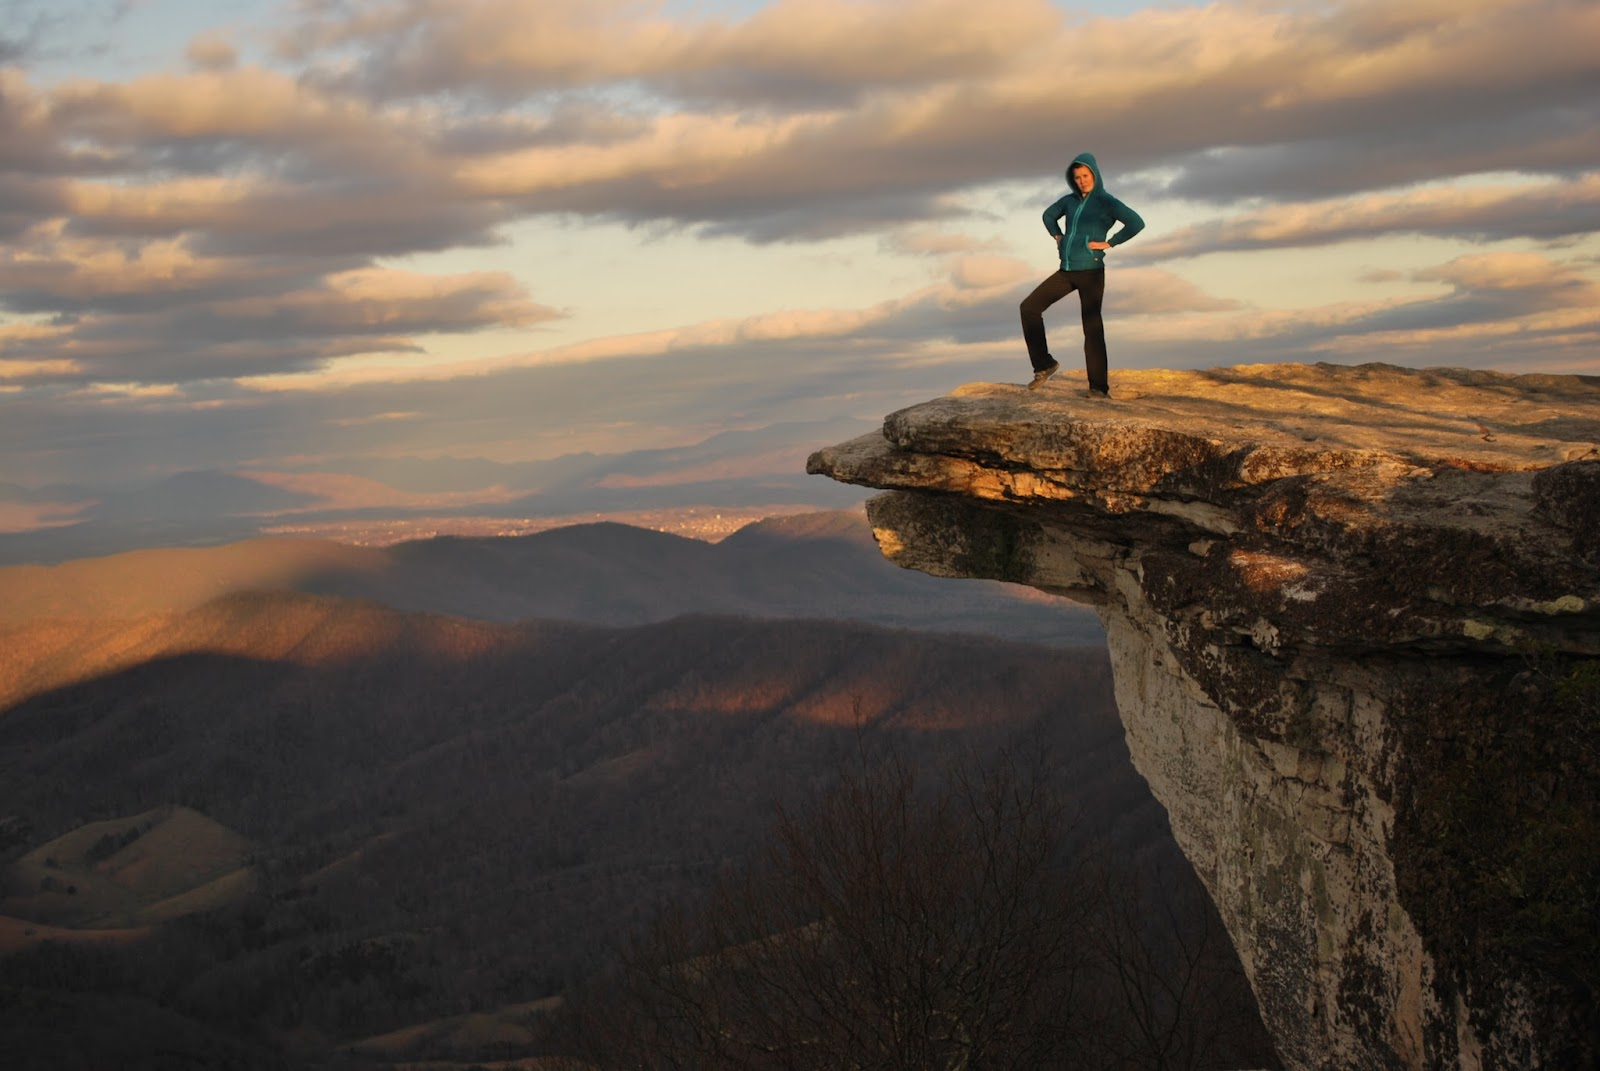 Photo Spotlight: McAfees Knob (6/6)